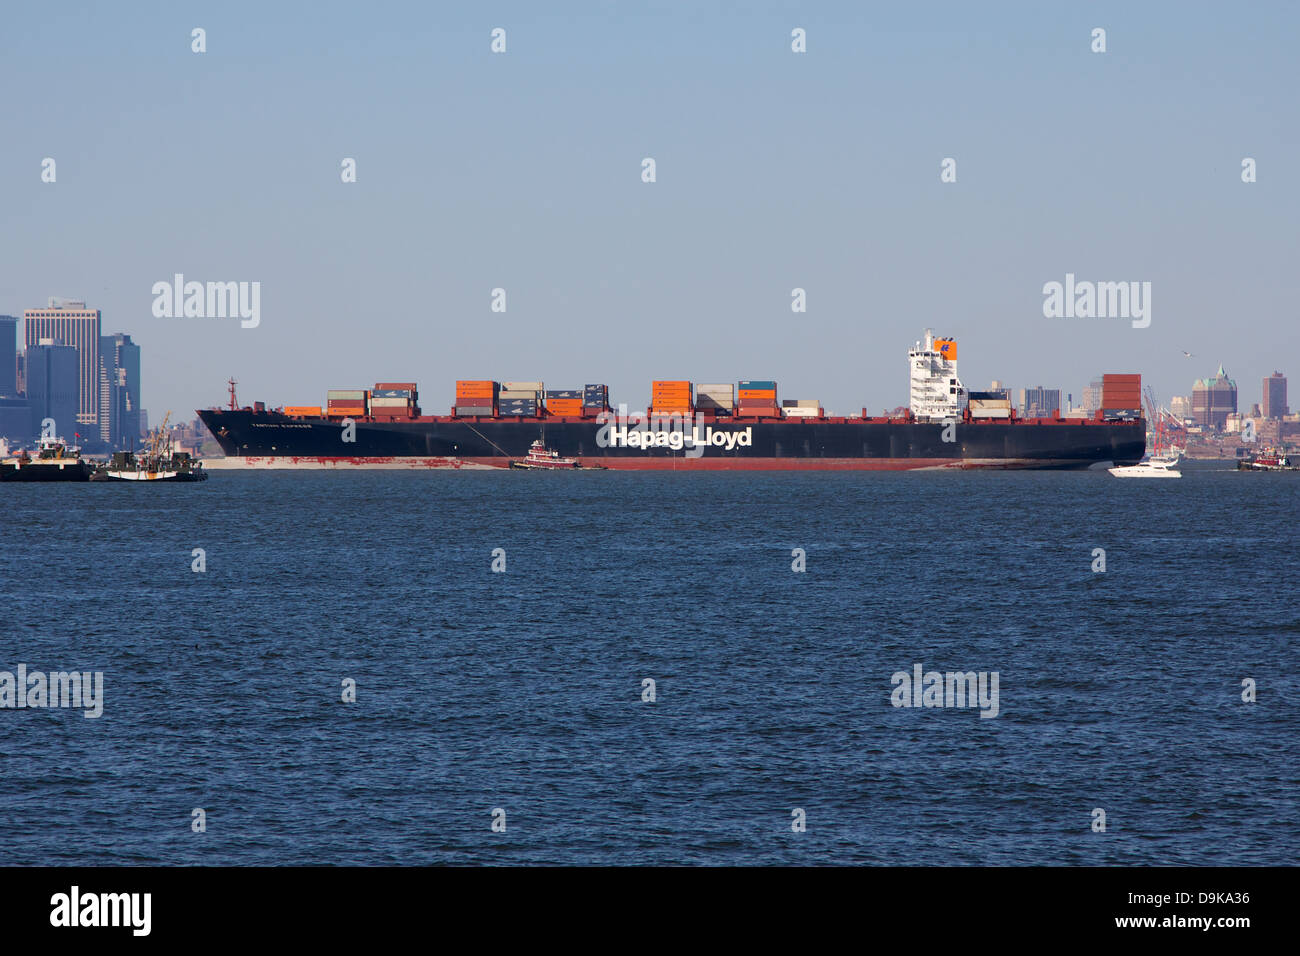 Container freighter Yantian Express passing through New York Harbor. - Stock Image